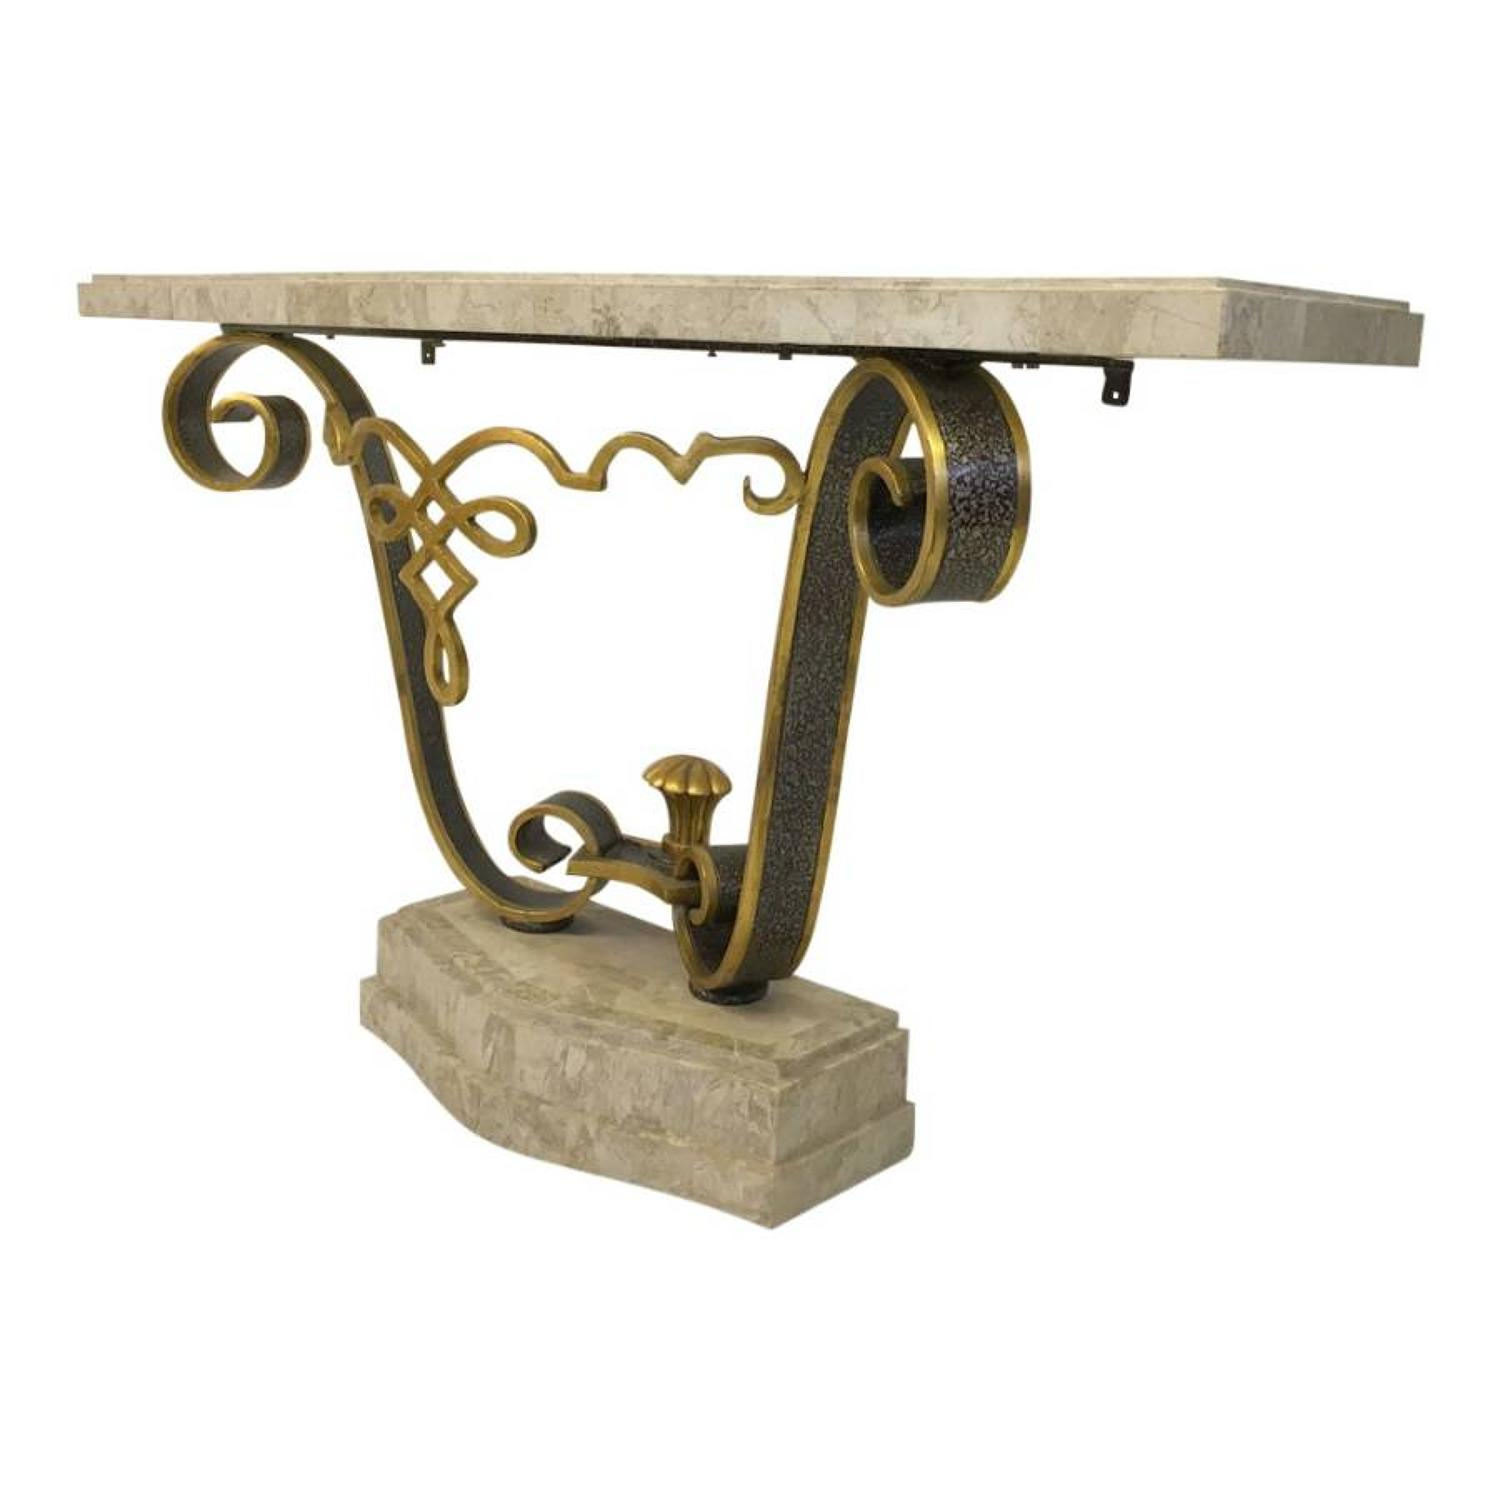 Tessellated stone console table by Maitland Smith